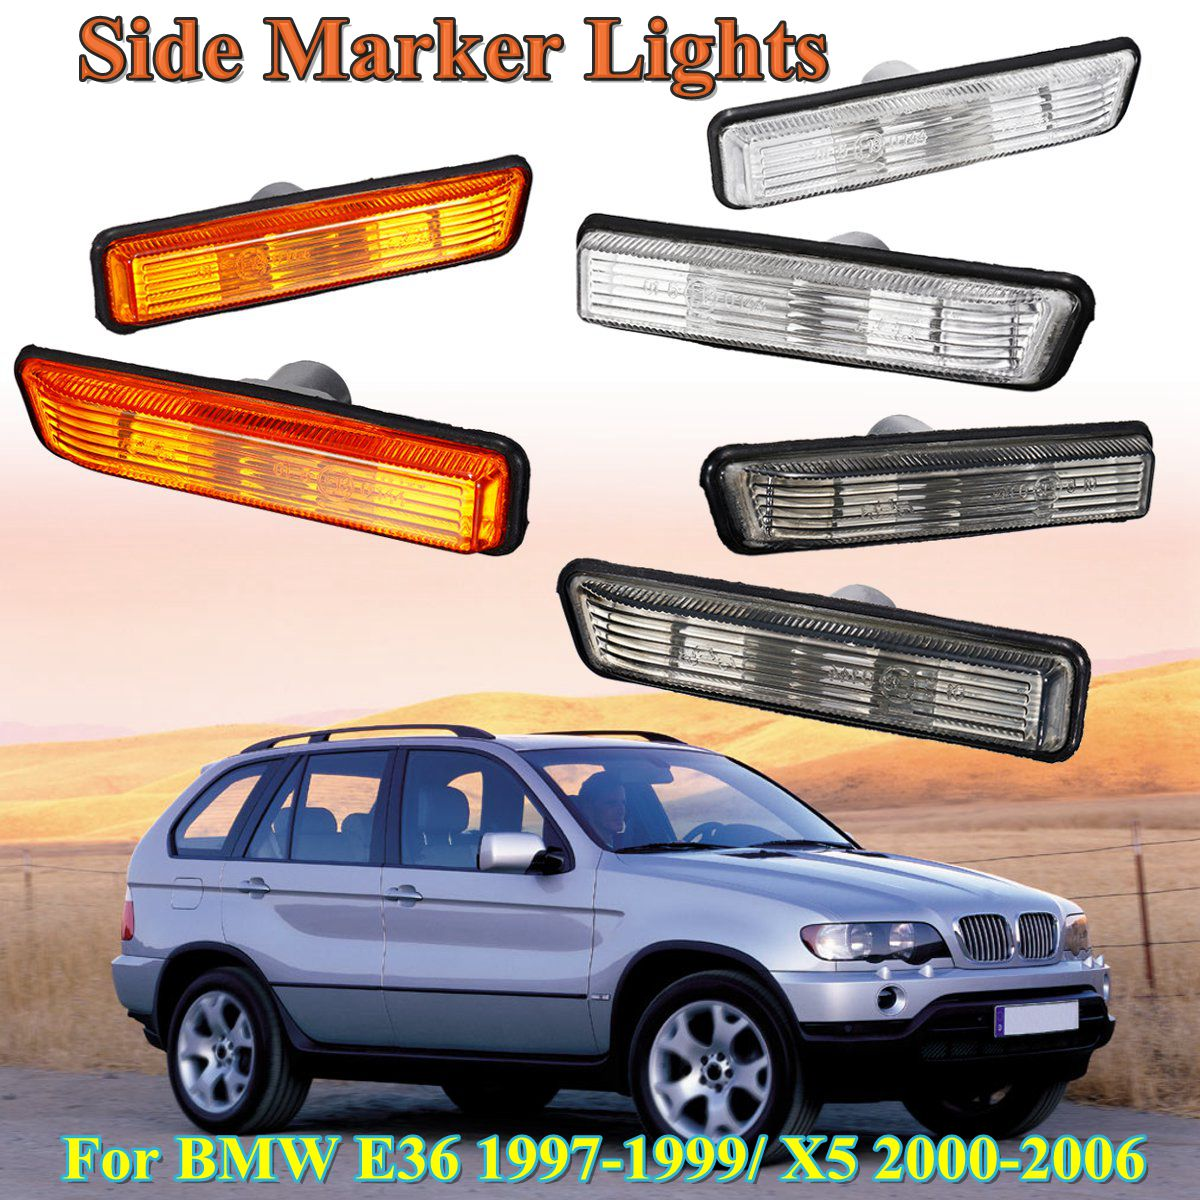 for BMW E36 1997 1998 1999 X5 2000 2001 2002-2006 1 Pair Car styling Side Marker Turn Signal Lights Repeater replacement Lampfor BMW E36 1997 1998 1999 X5 2000 2001 2002-2006 1 Pair Car styling Side Marker Turn Signal Lights Repeater replacement Lamp